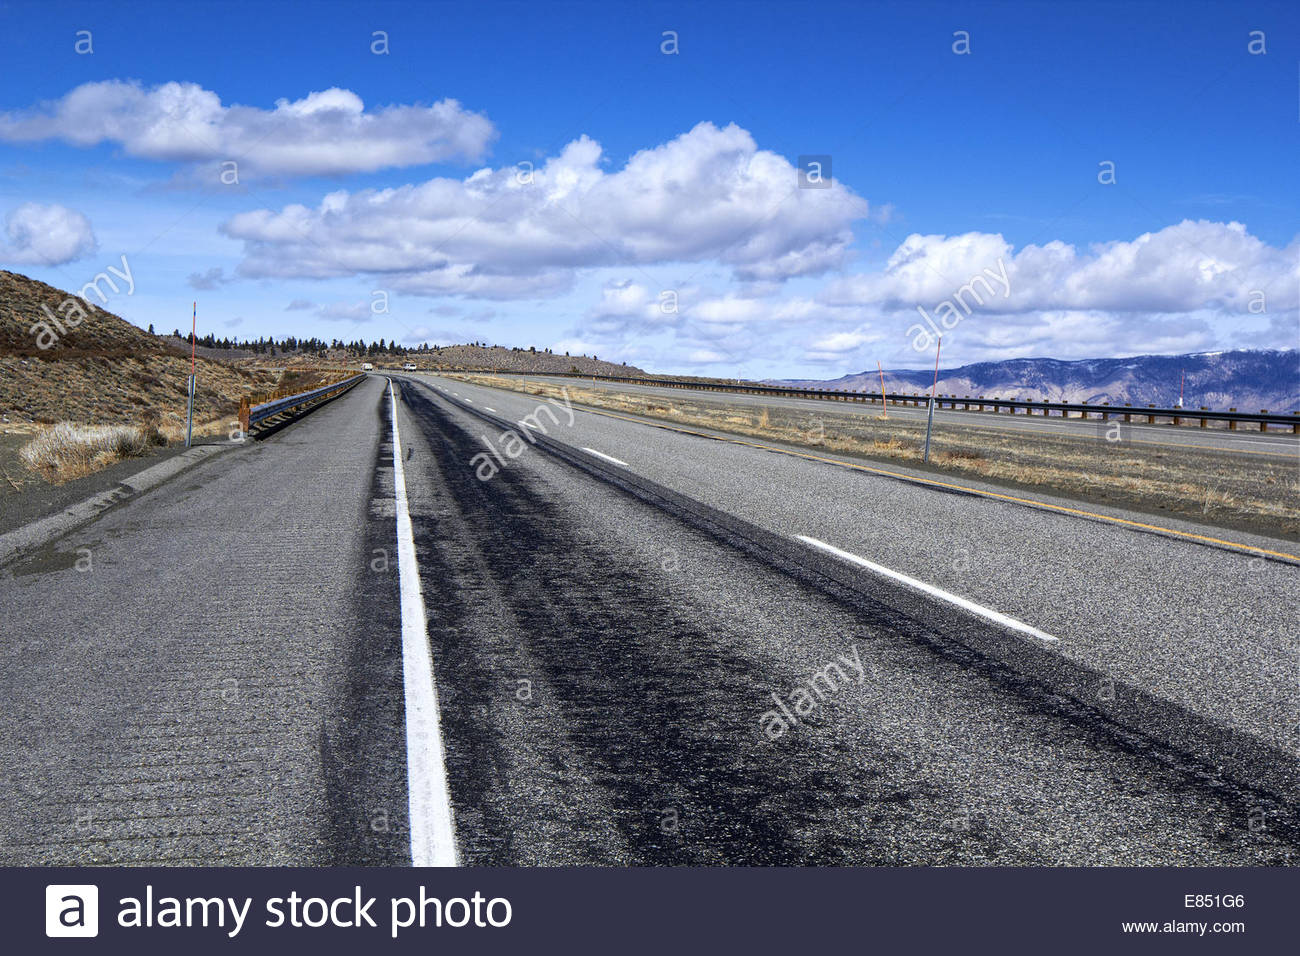 Background Photo Of Side An Open Desert Highway Road Blue Sky With Patchy Clouds